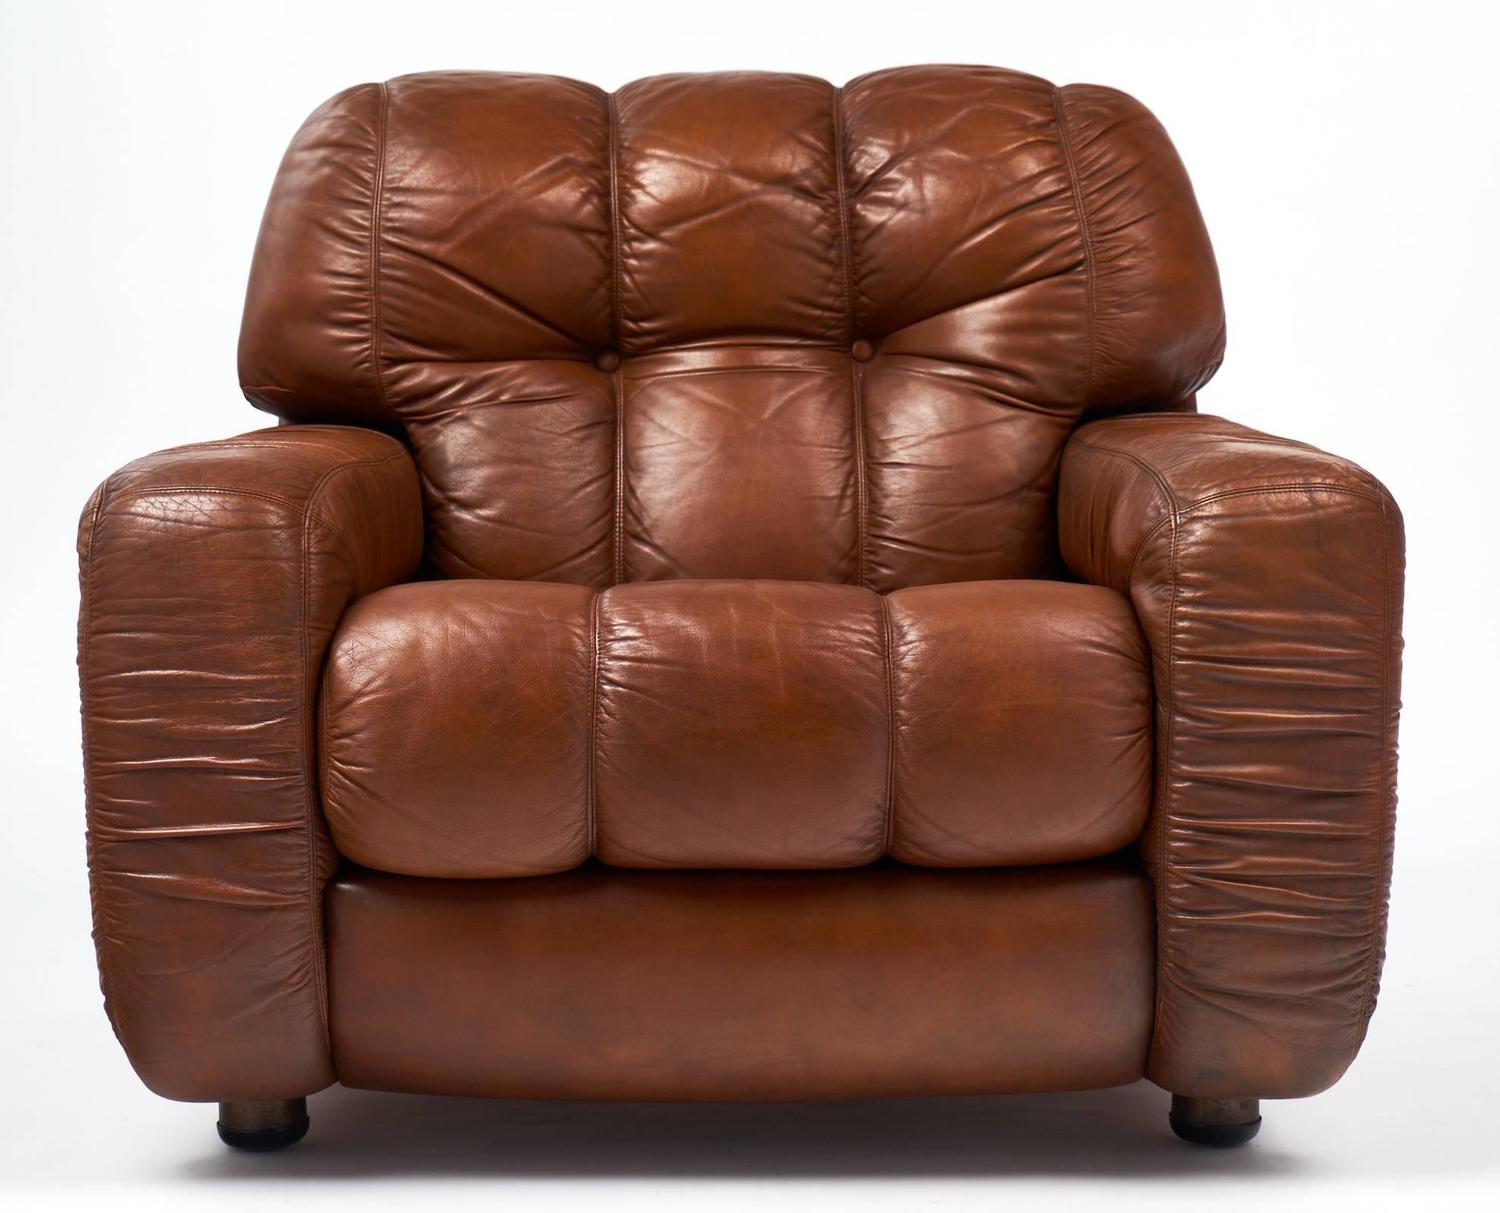 French Vintage Overstuffed Leather Club Chairs For Sale At